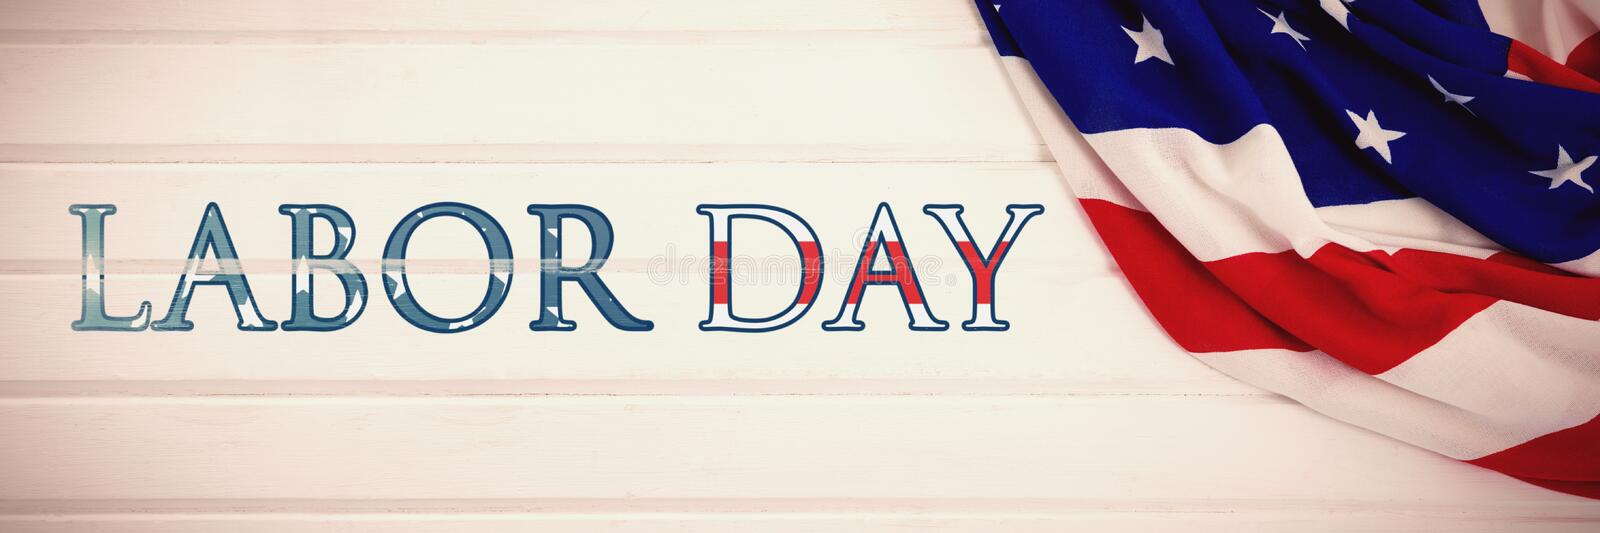 Composite image of poster of labor day text. Poster of labor day text against close-up of an american flag stock illustration